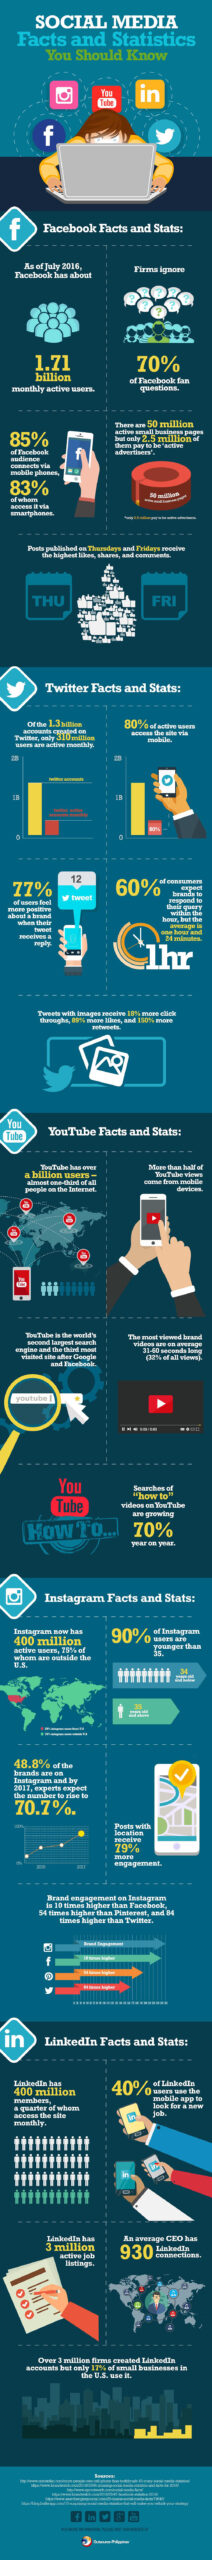 social media facts you cant afford to snub v2 scaled